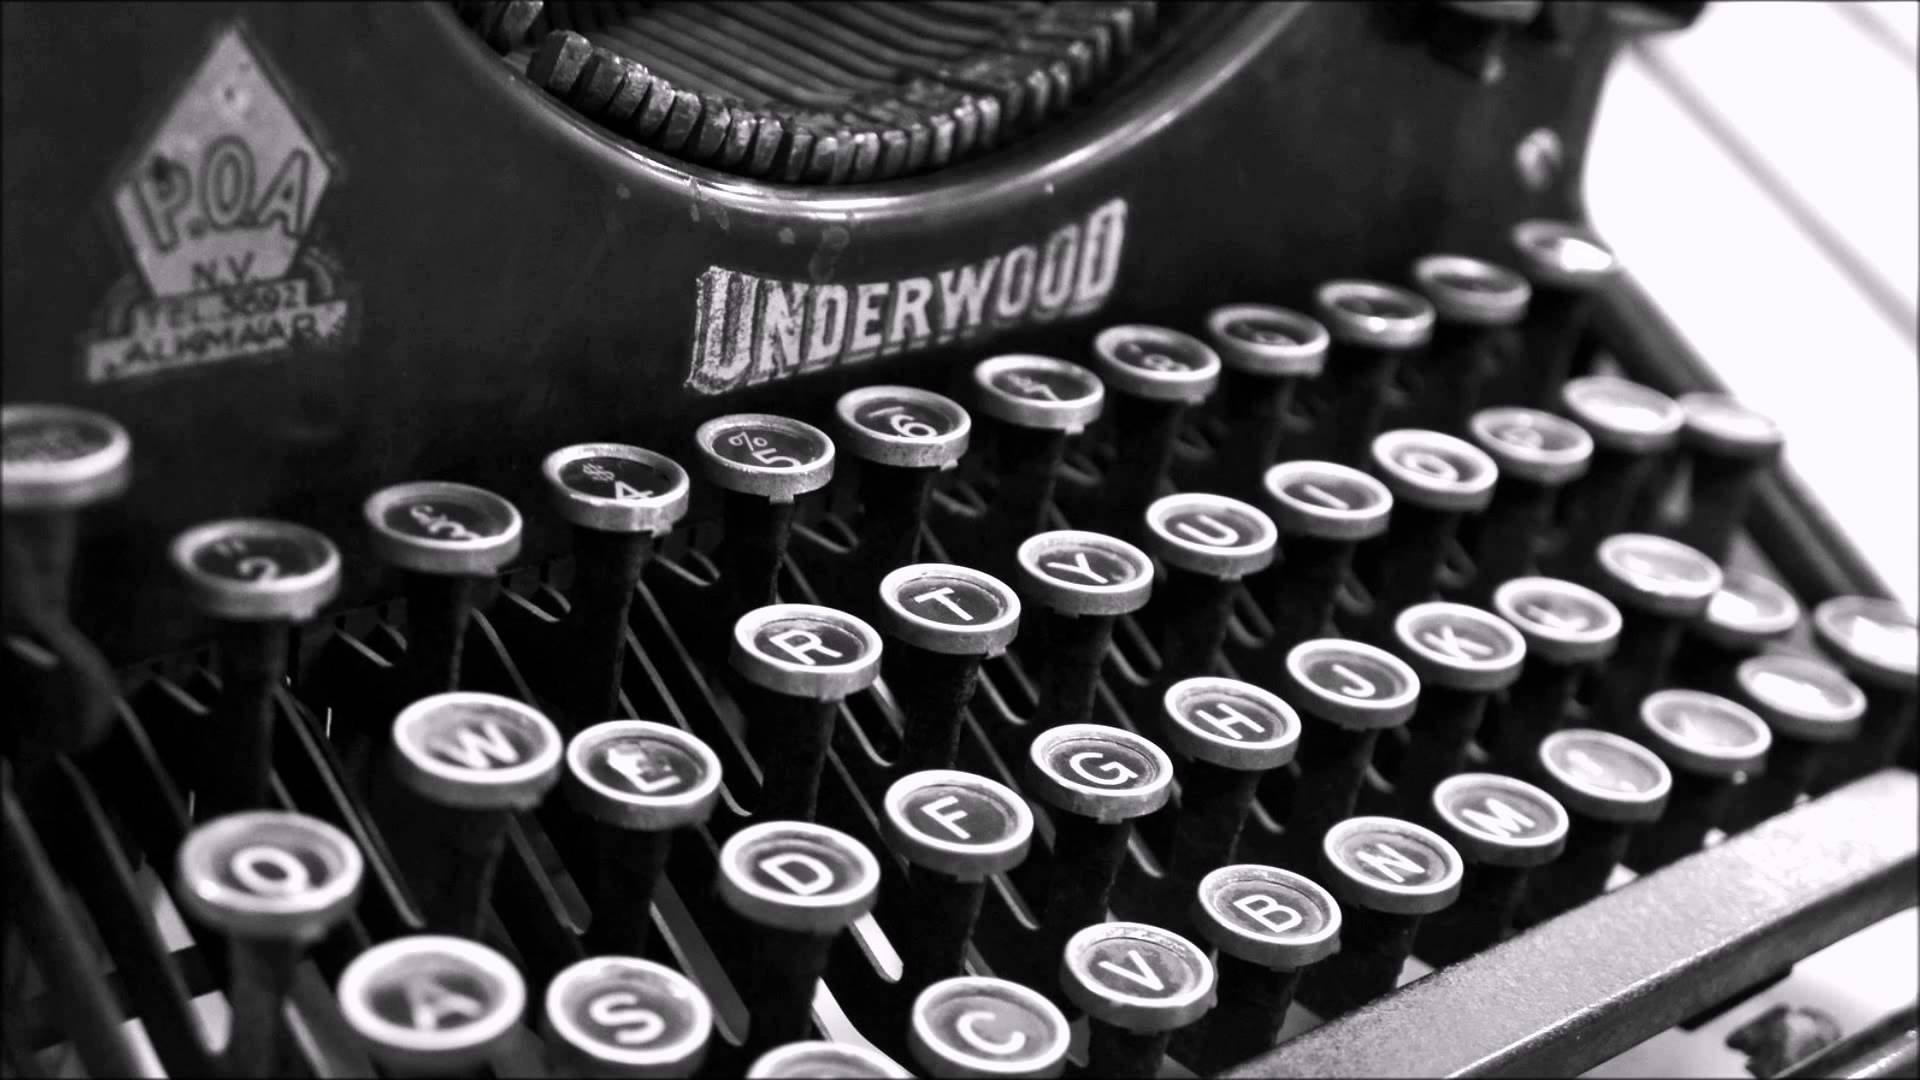 Typewriter Wallpapers - Top Free Typewriter Backgrounds